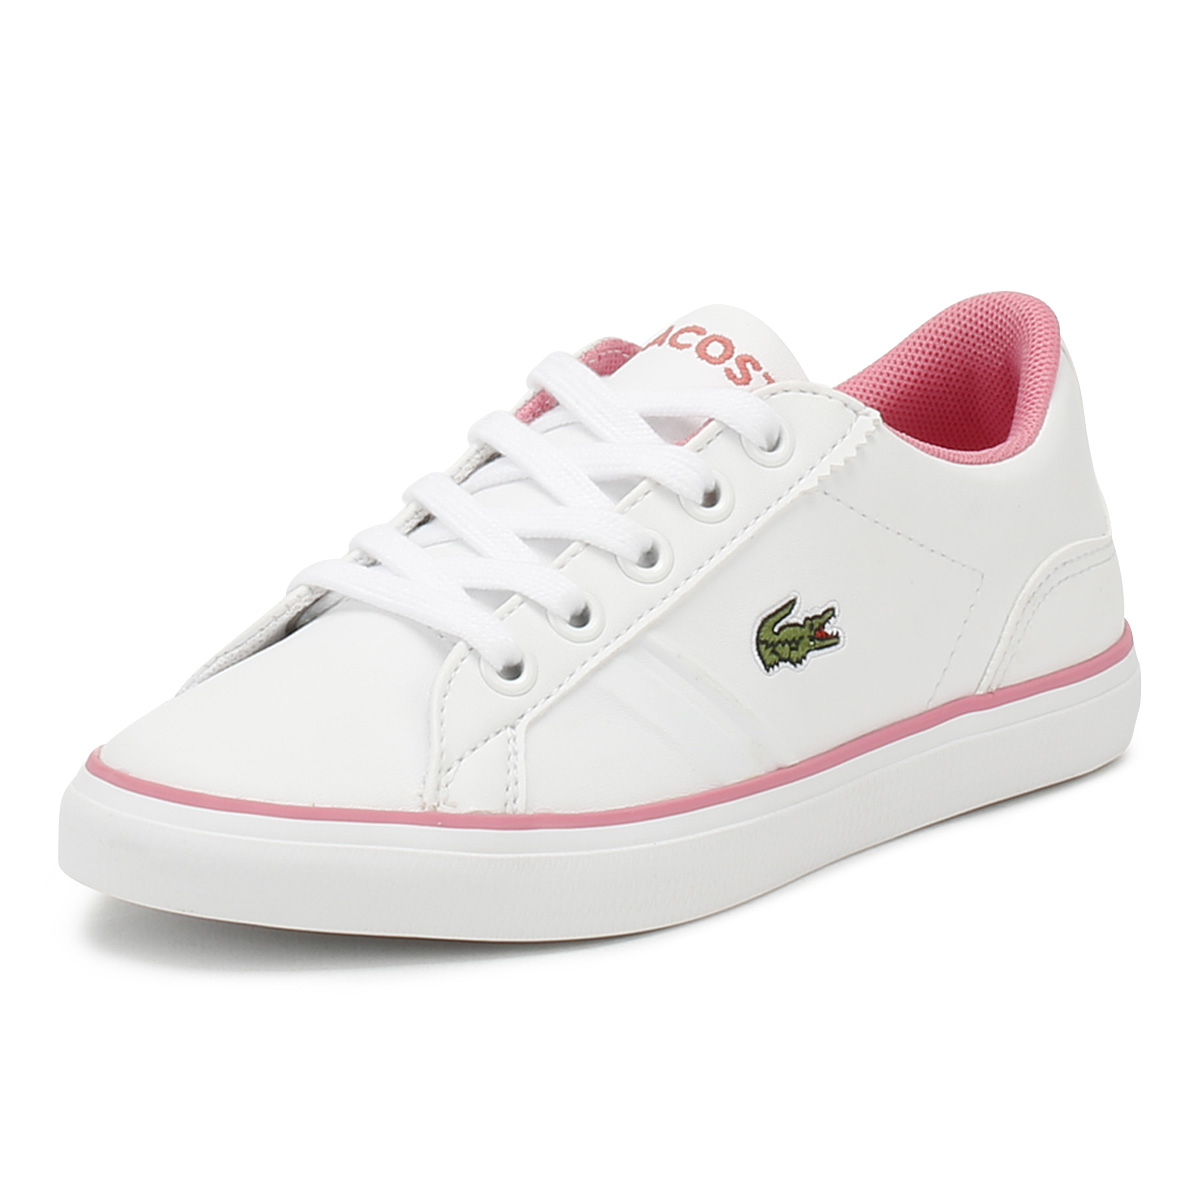 00a25480bbc6 Details about Lacoste Junior Trainers White   Pink Lerond 218 2 Kids Girls  Sport Casual Shoes